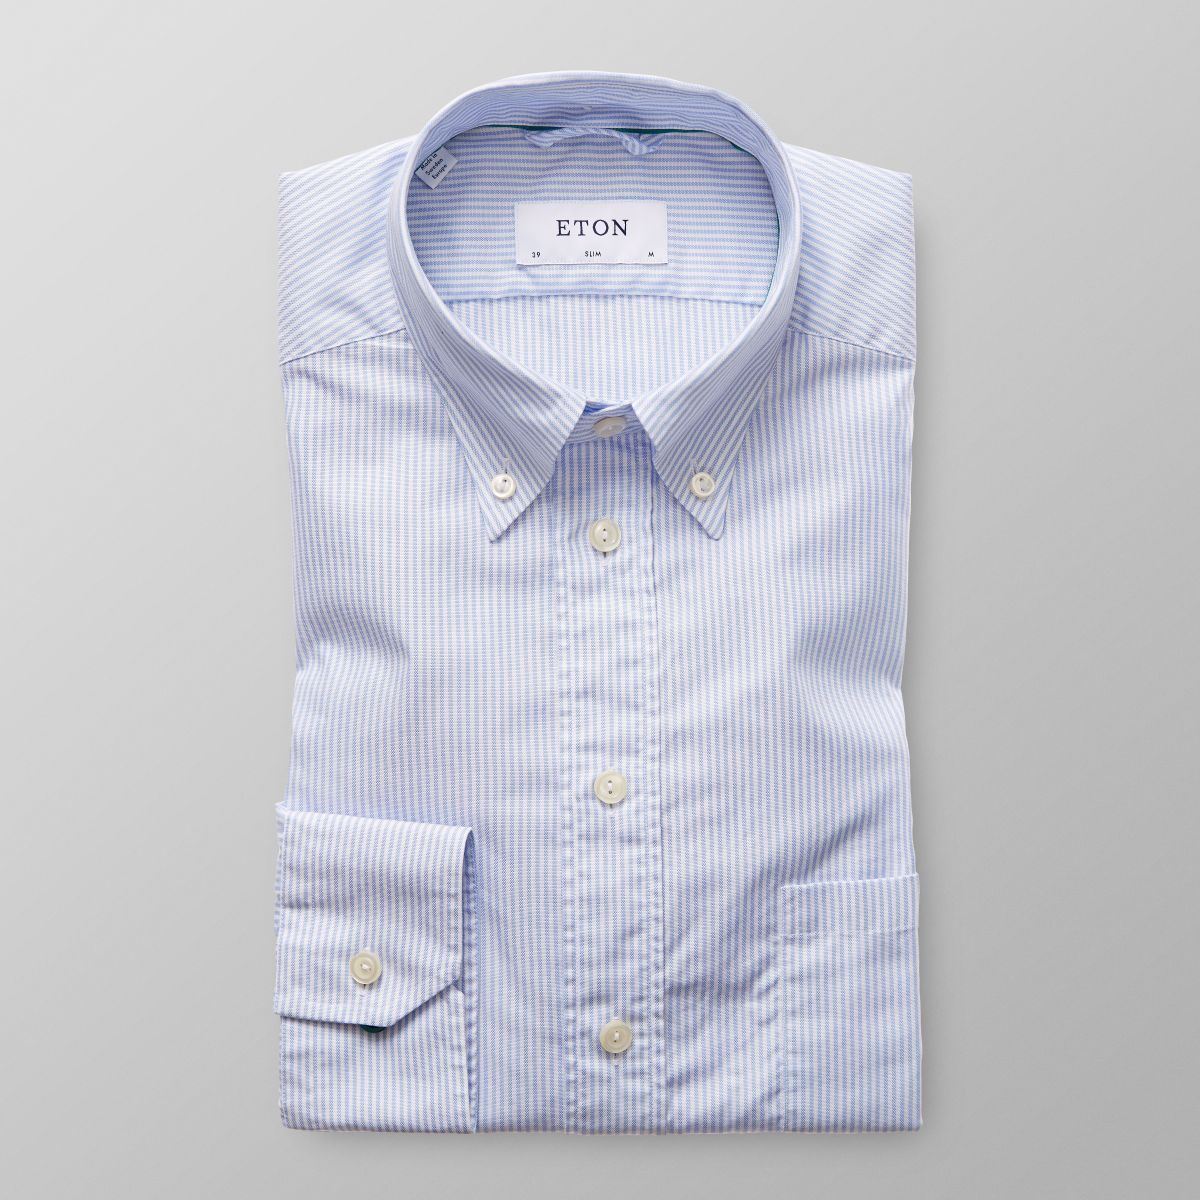 Tommy Hilfiger women's shirt. It's your favorite oxford, tailored for the girls in a borrowed-from-the-lads stripe. • Classic fit. • % cotton.